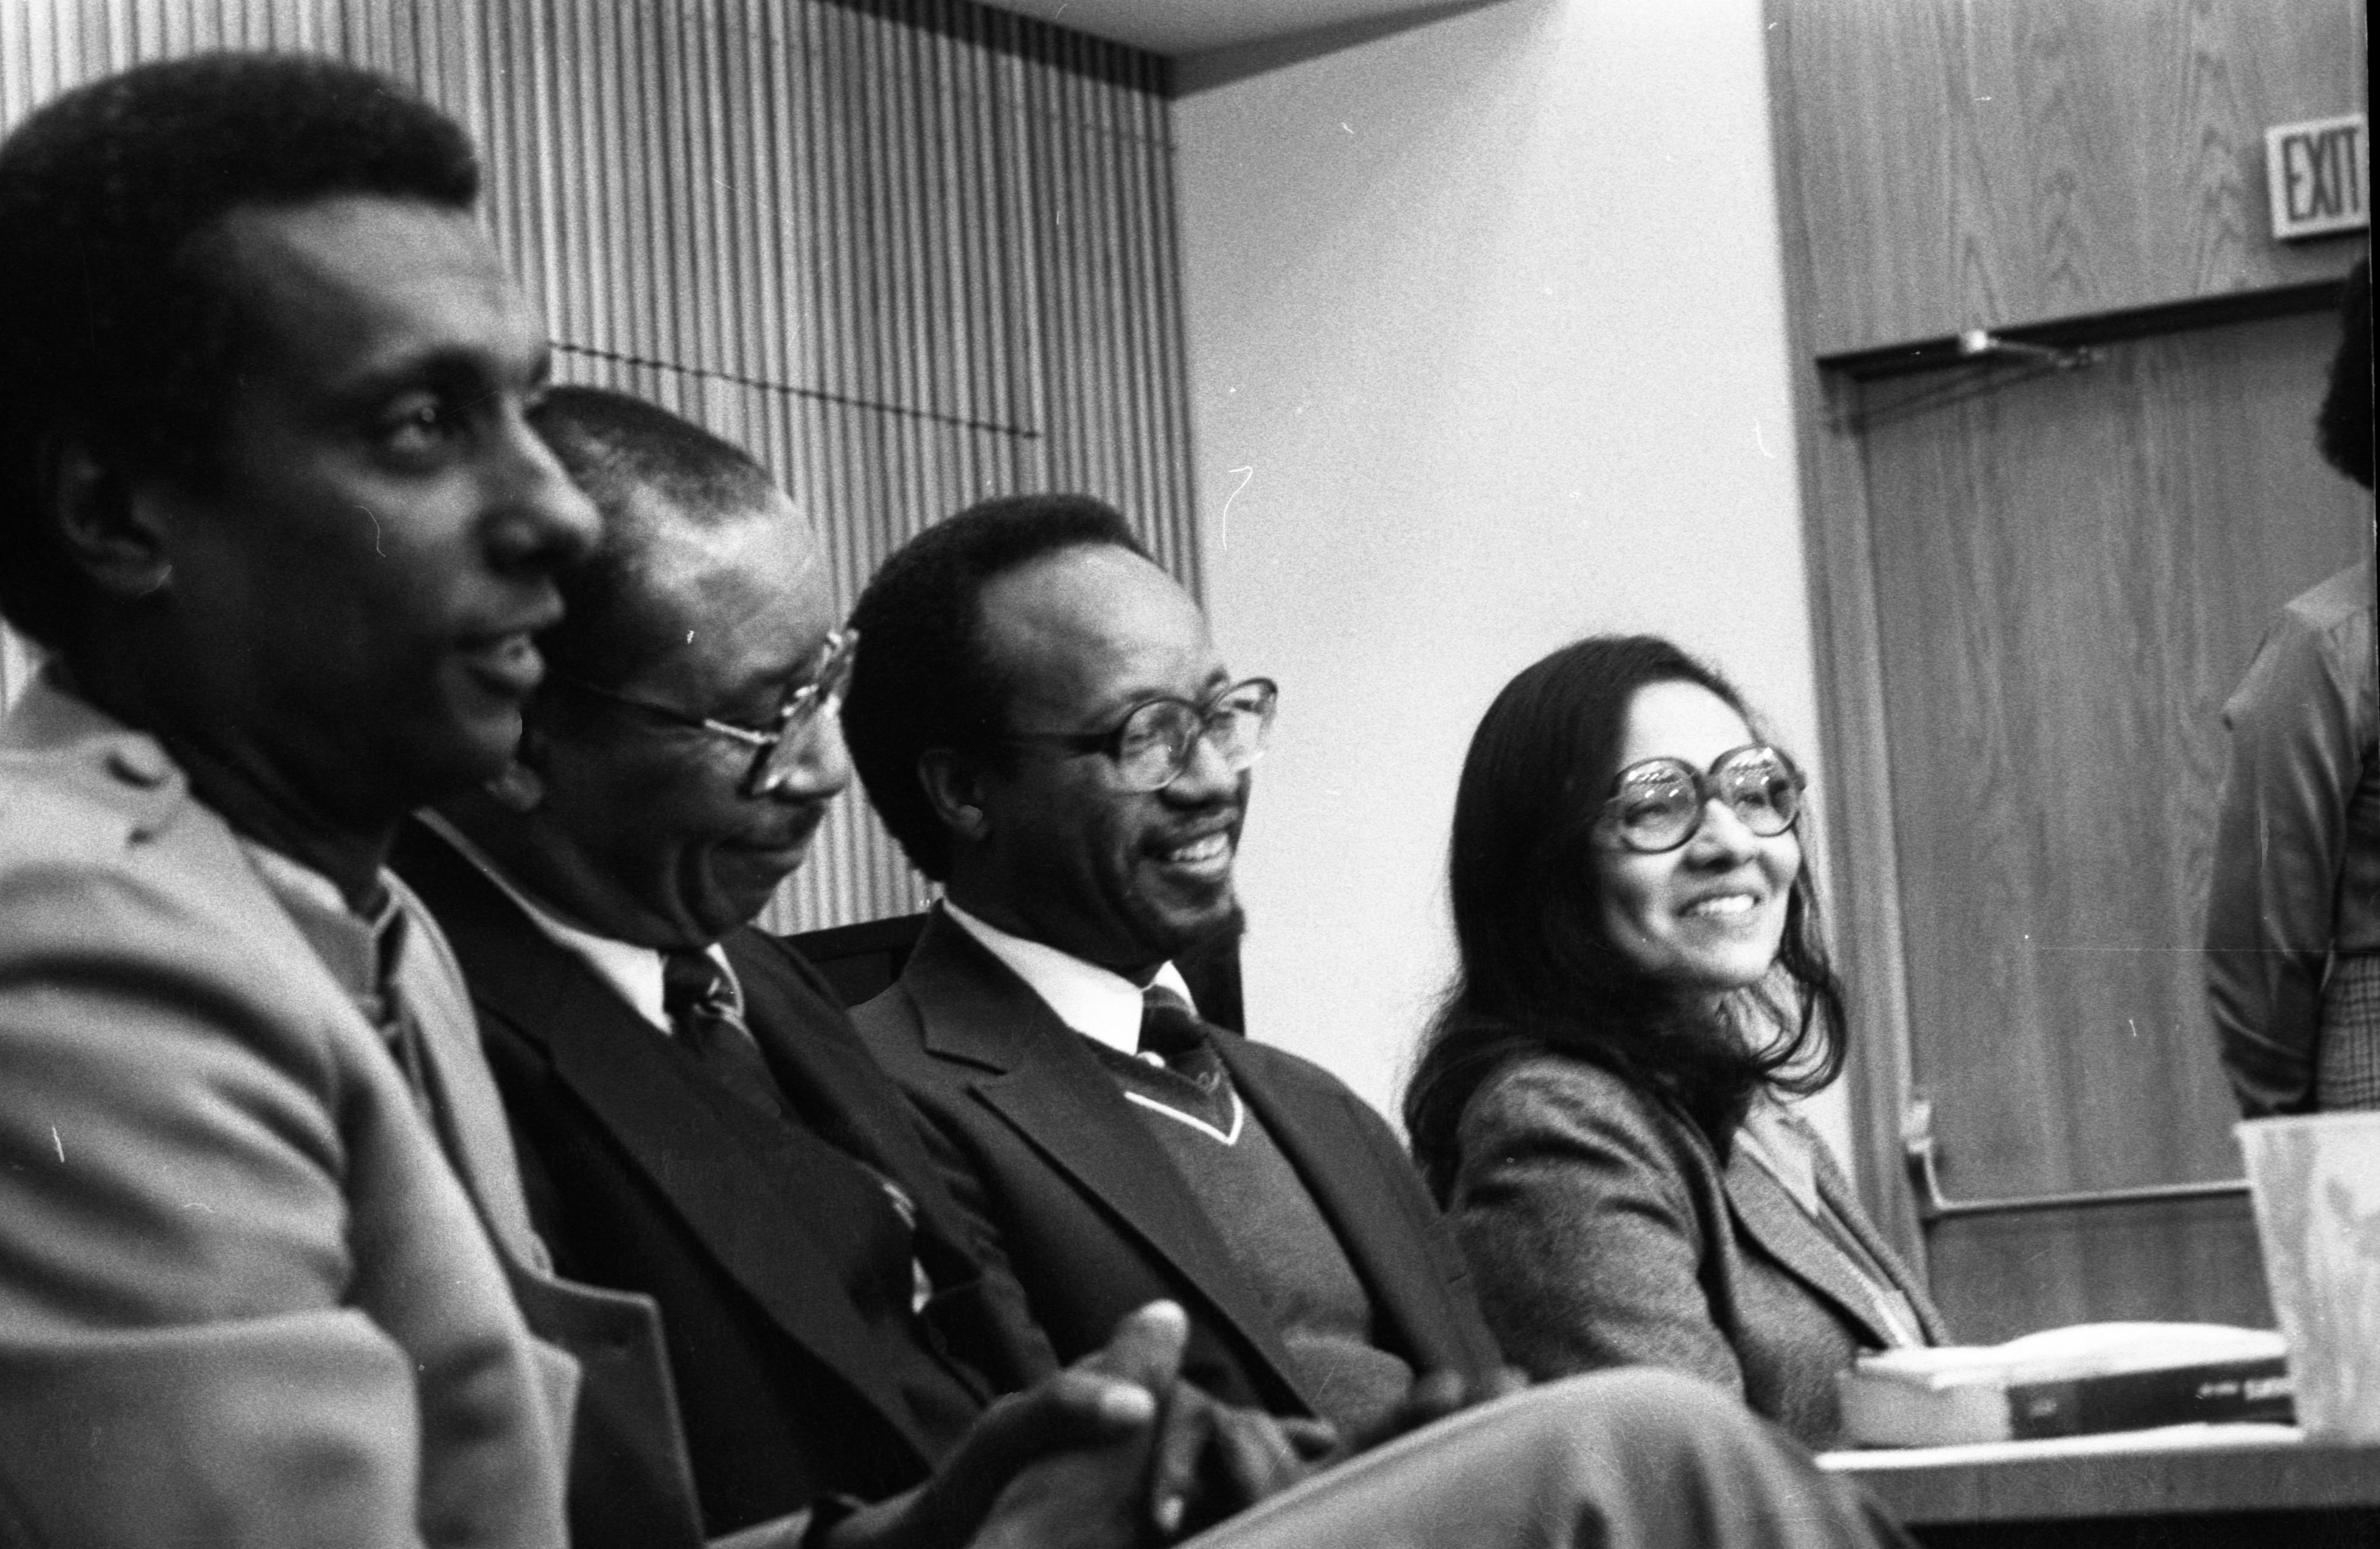 Stokely Carmichael & Others At Hale Auditorium For Conference Honoring Black History Month, February 13, 1983 image